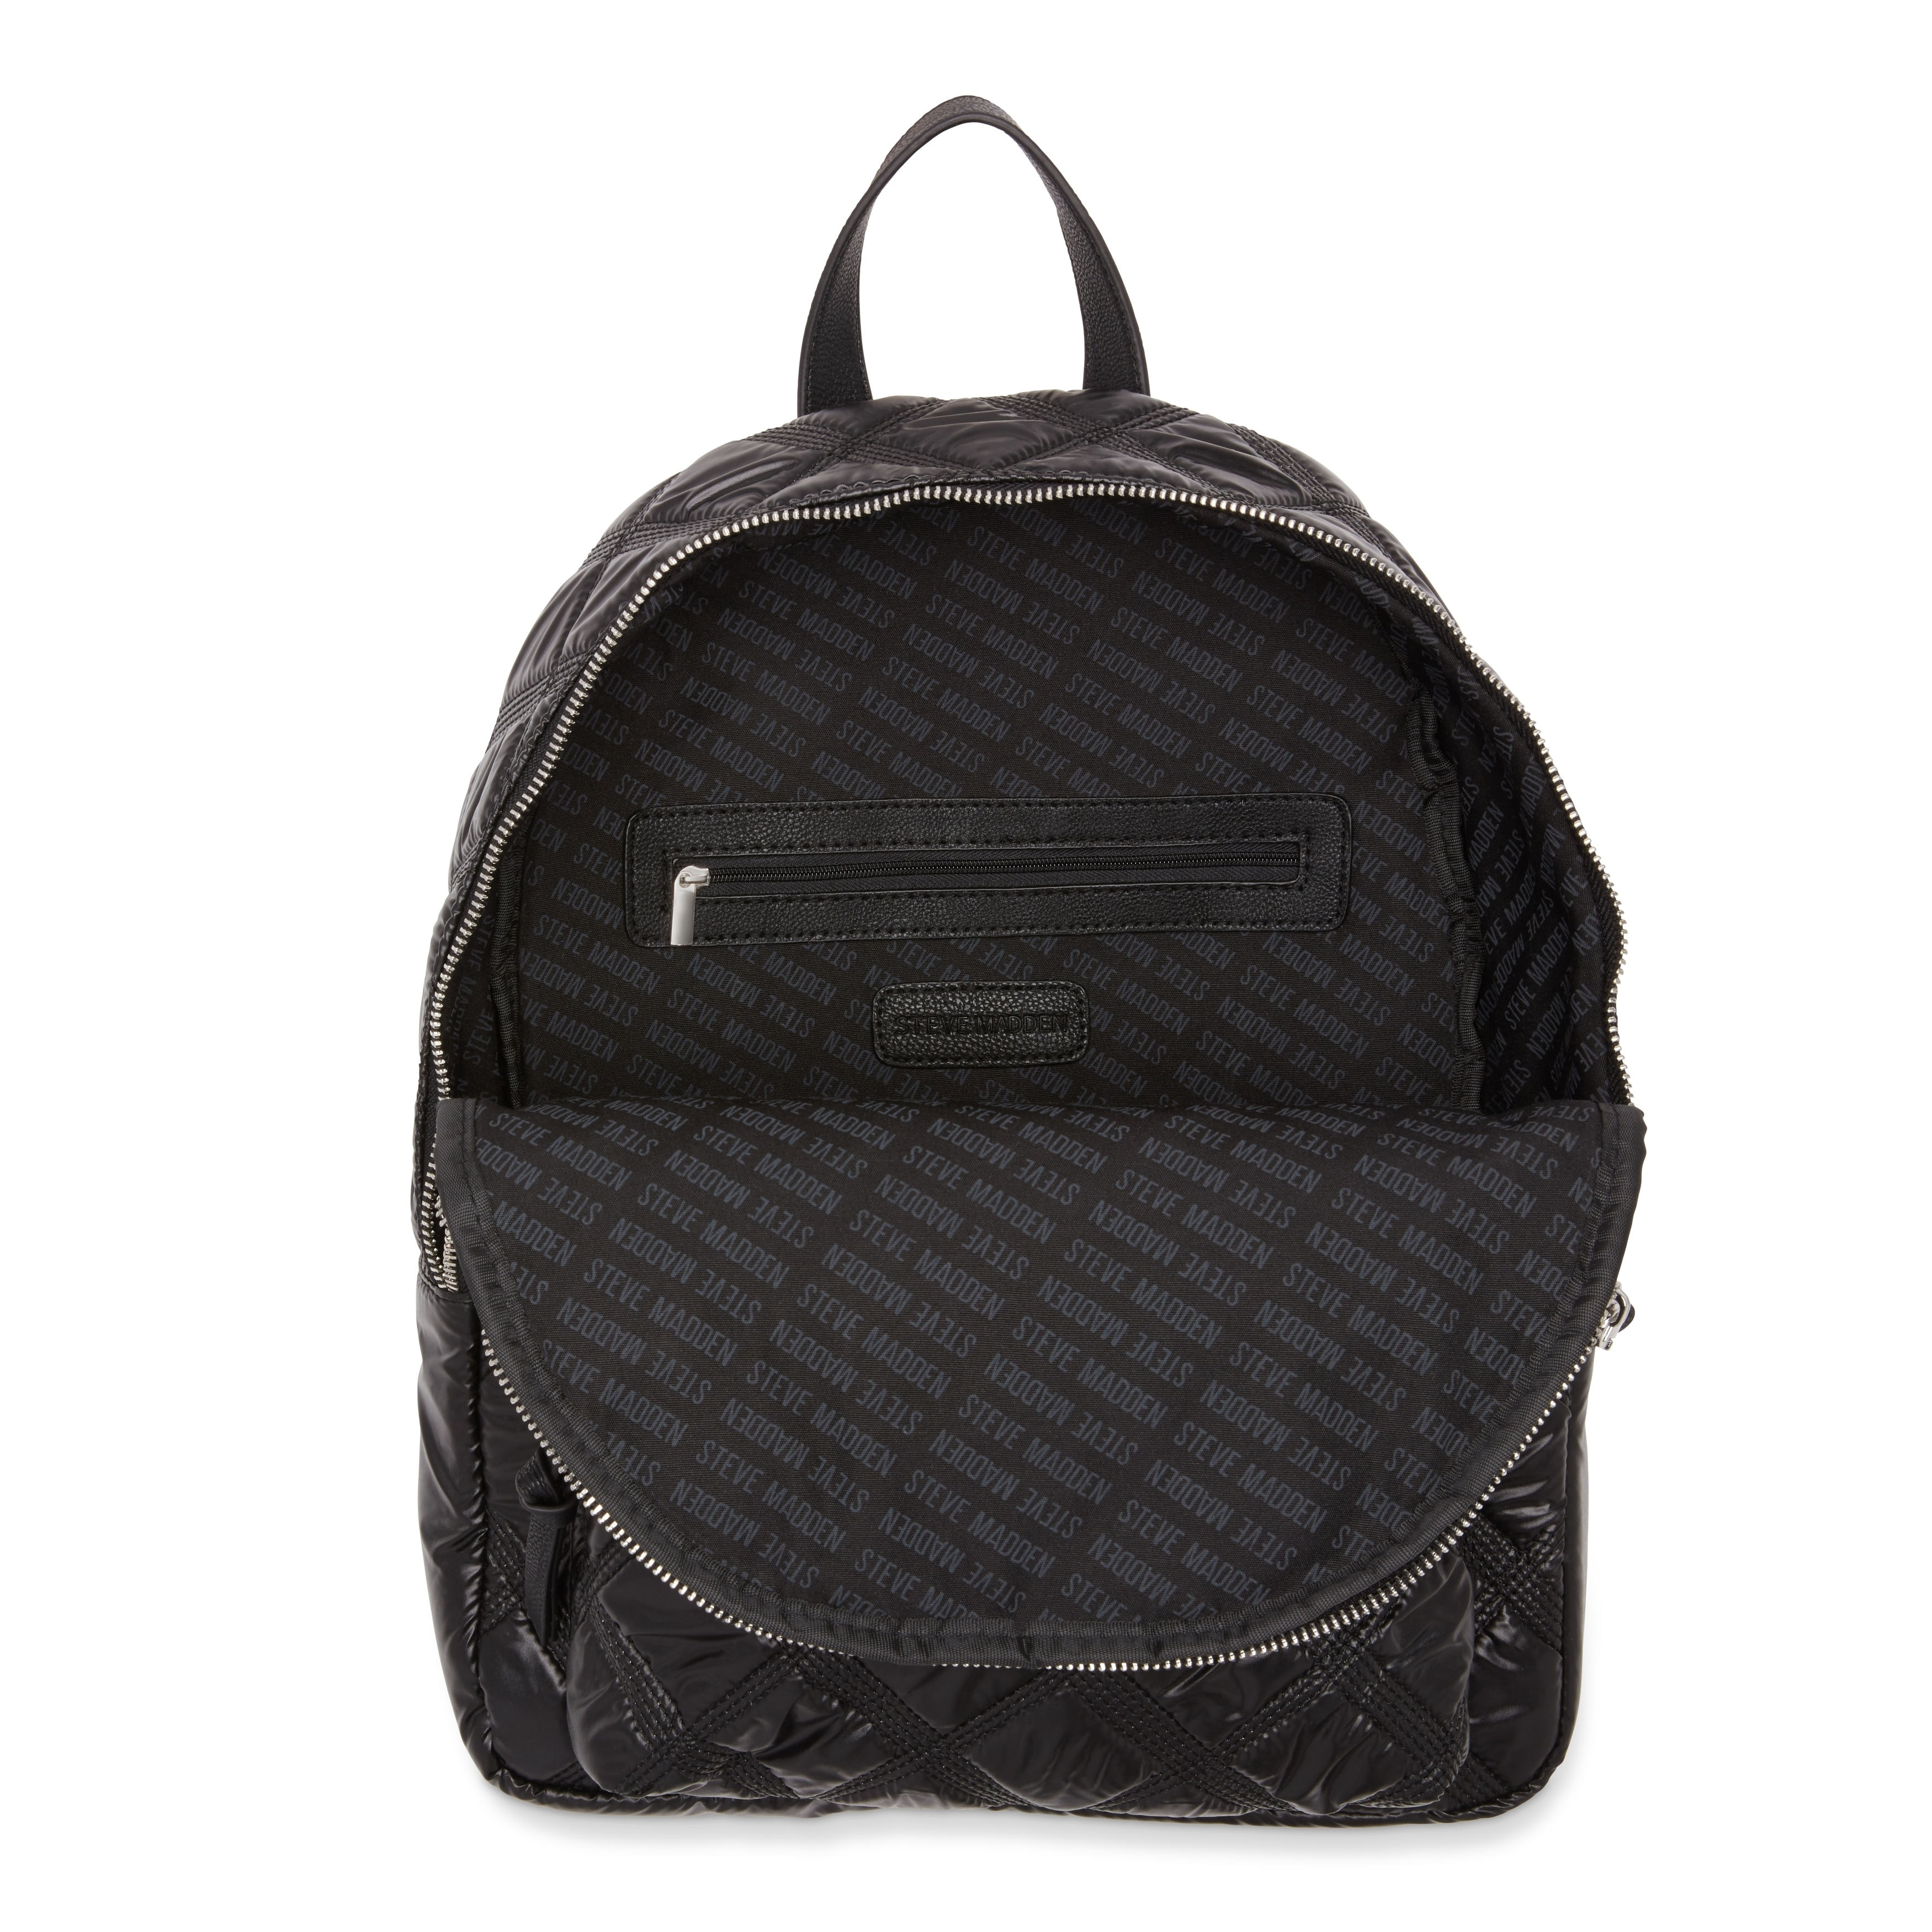 76ff70cc56 Shop Steve Madden BNyla Triple-Stitch Nylon Fashion Backpack - Free  Shipping On Orders Over $45 - Overstock - 18000690